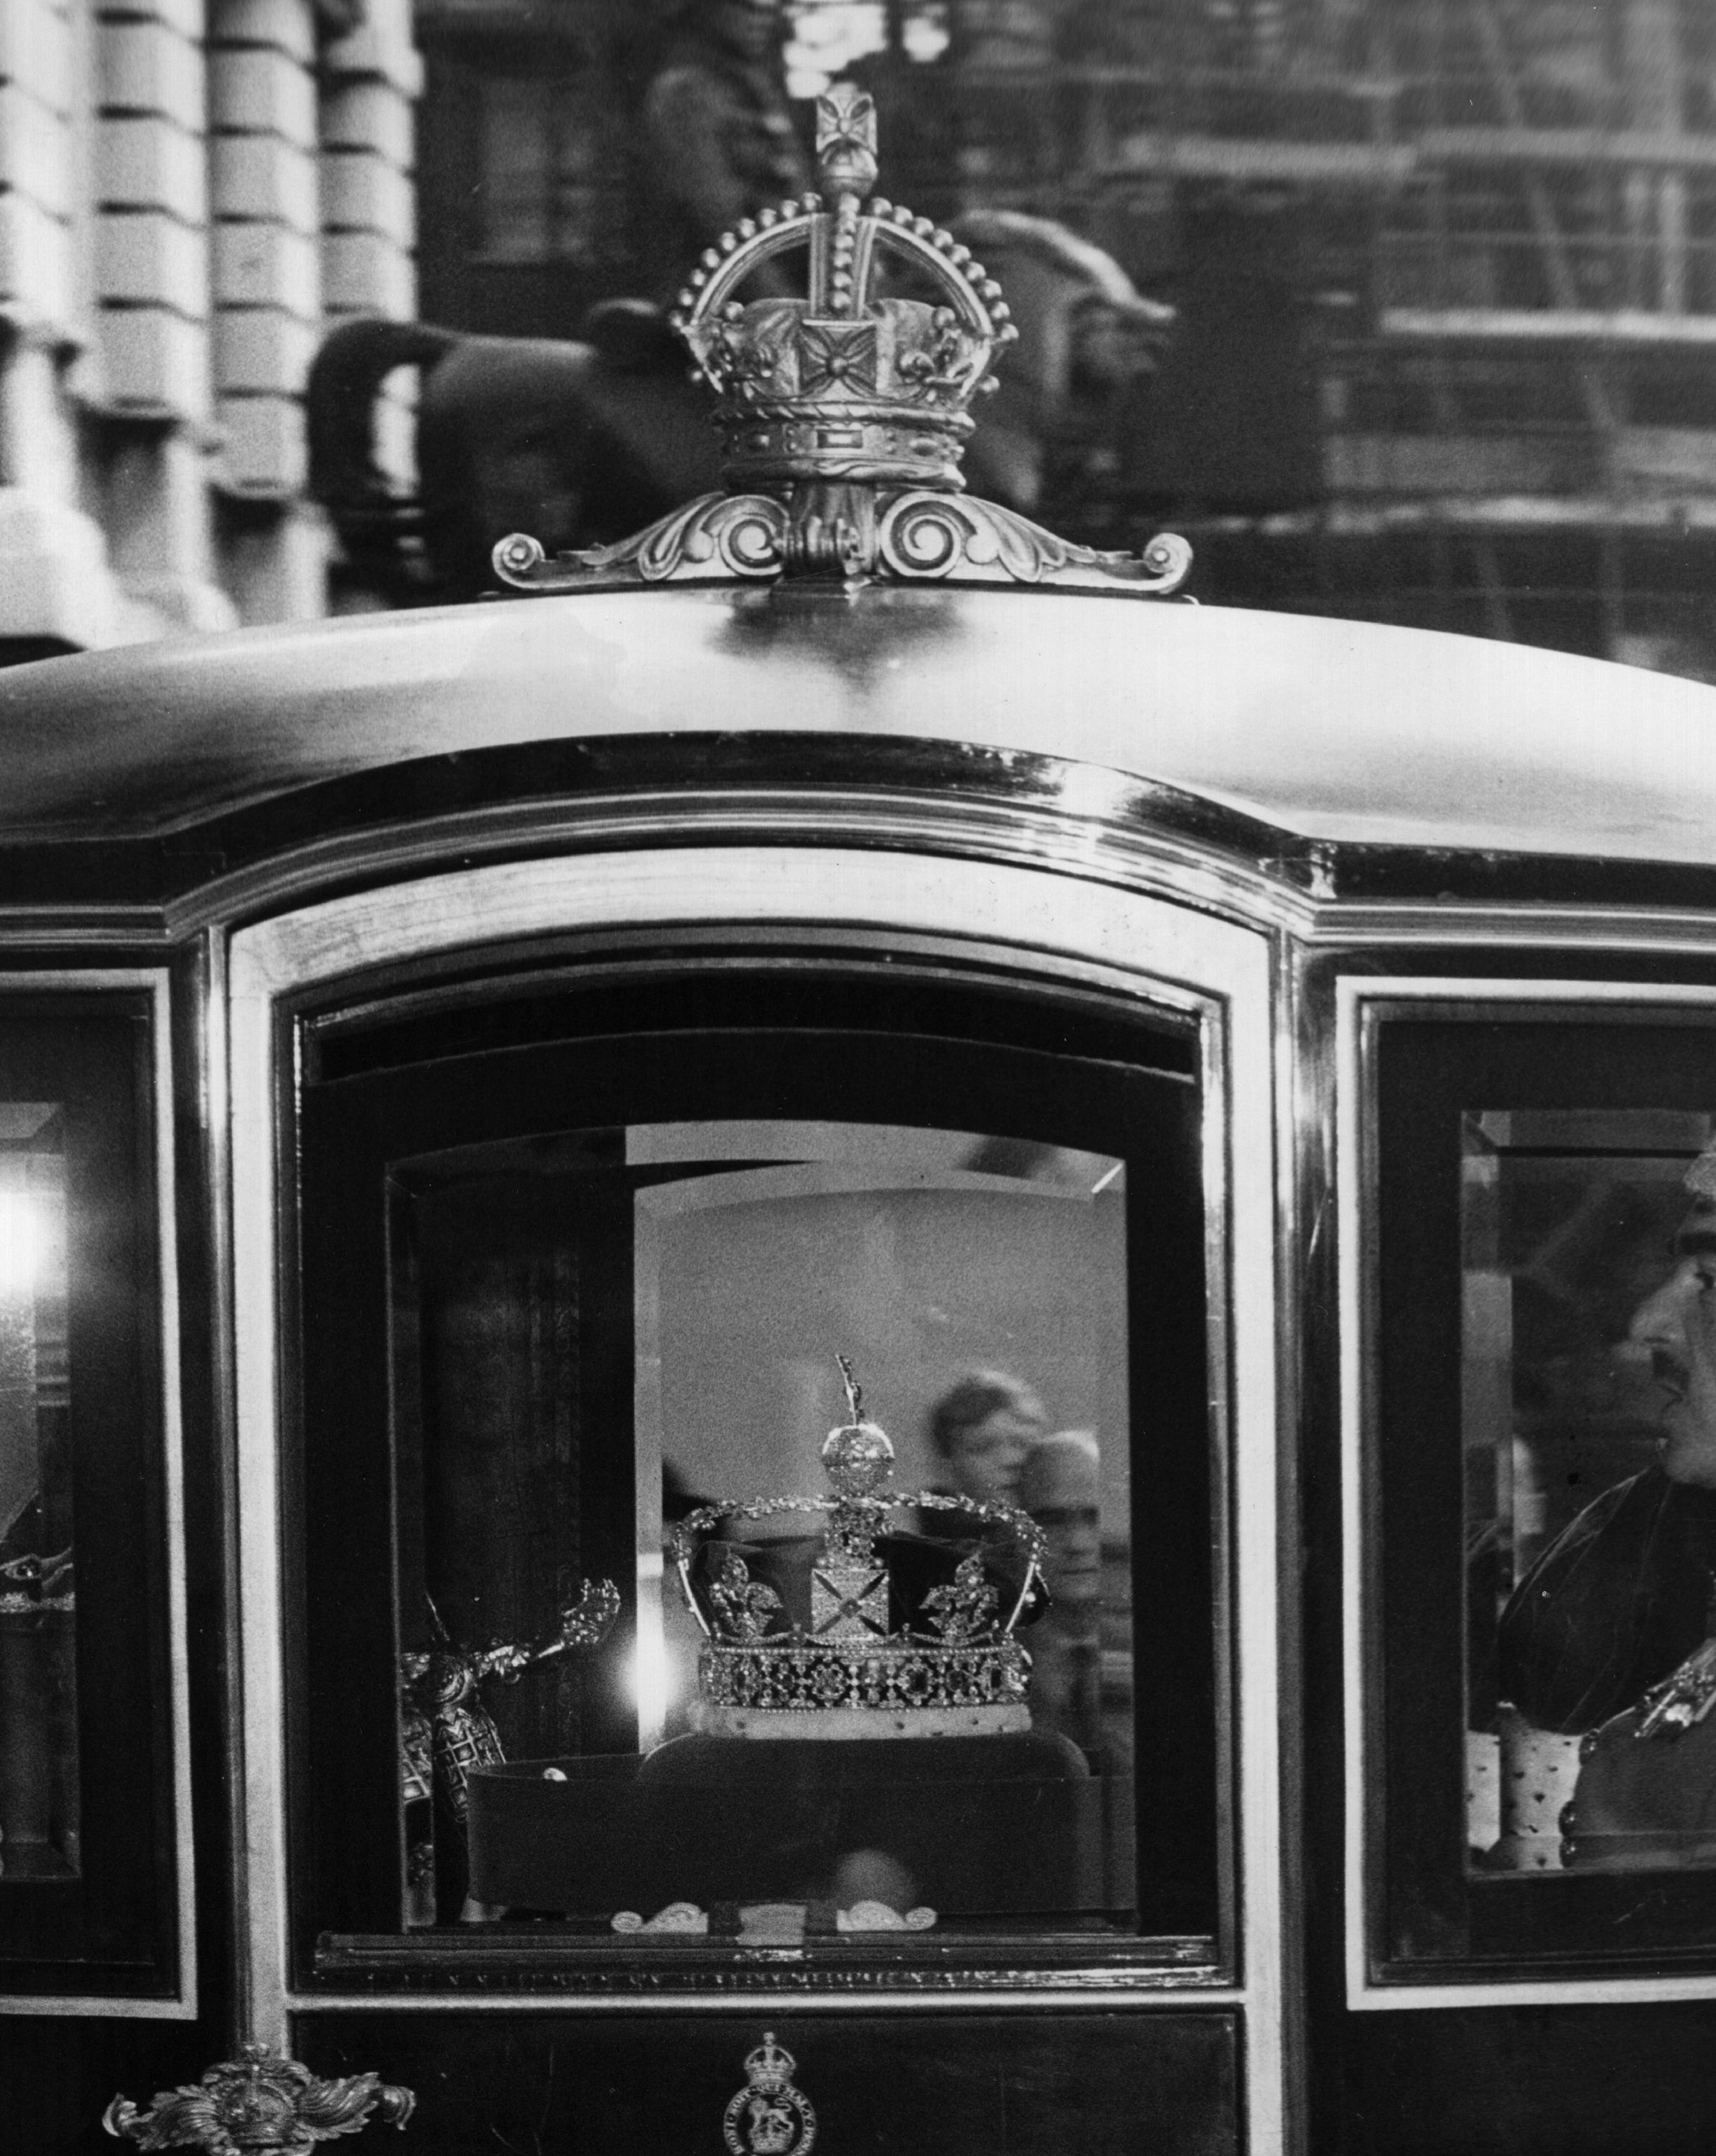 The Imperial State Crown lit by special spot lights in the Queen Alexandra's State Carriage as it precedes the Queen on her way to the State Opening of Parliament, in 1962.